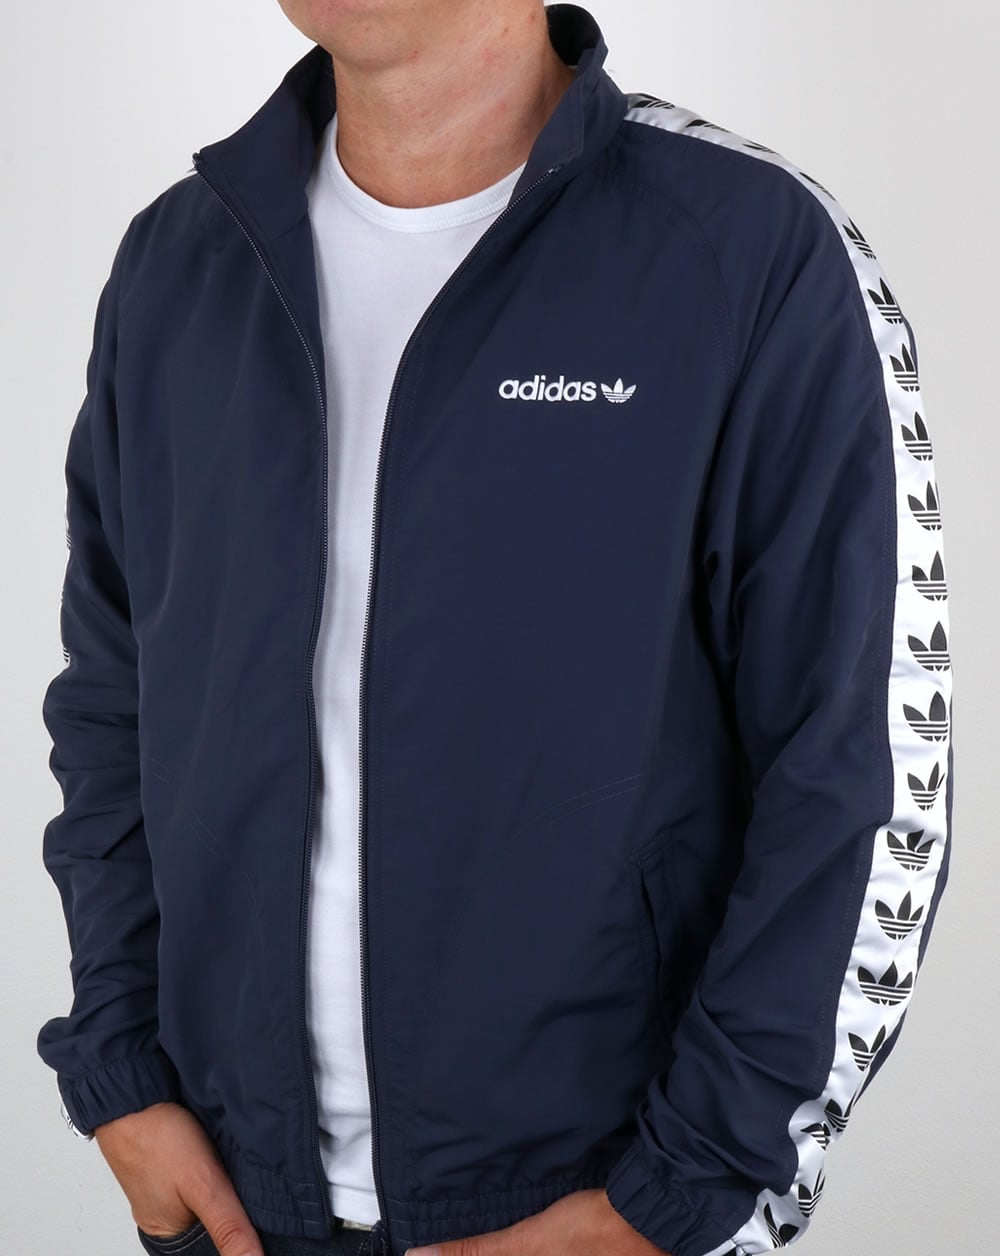 ffe4cead2 Adidas Originals TNT Tape Wind Jacket Trace Blue/White